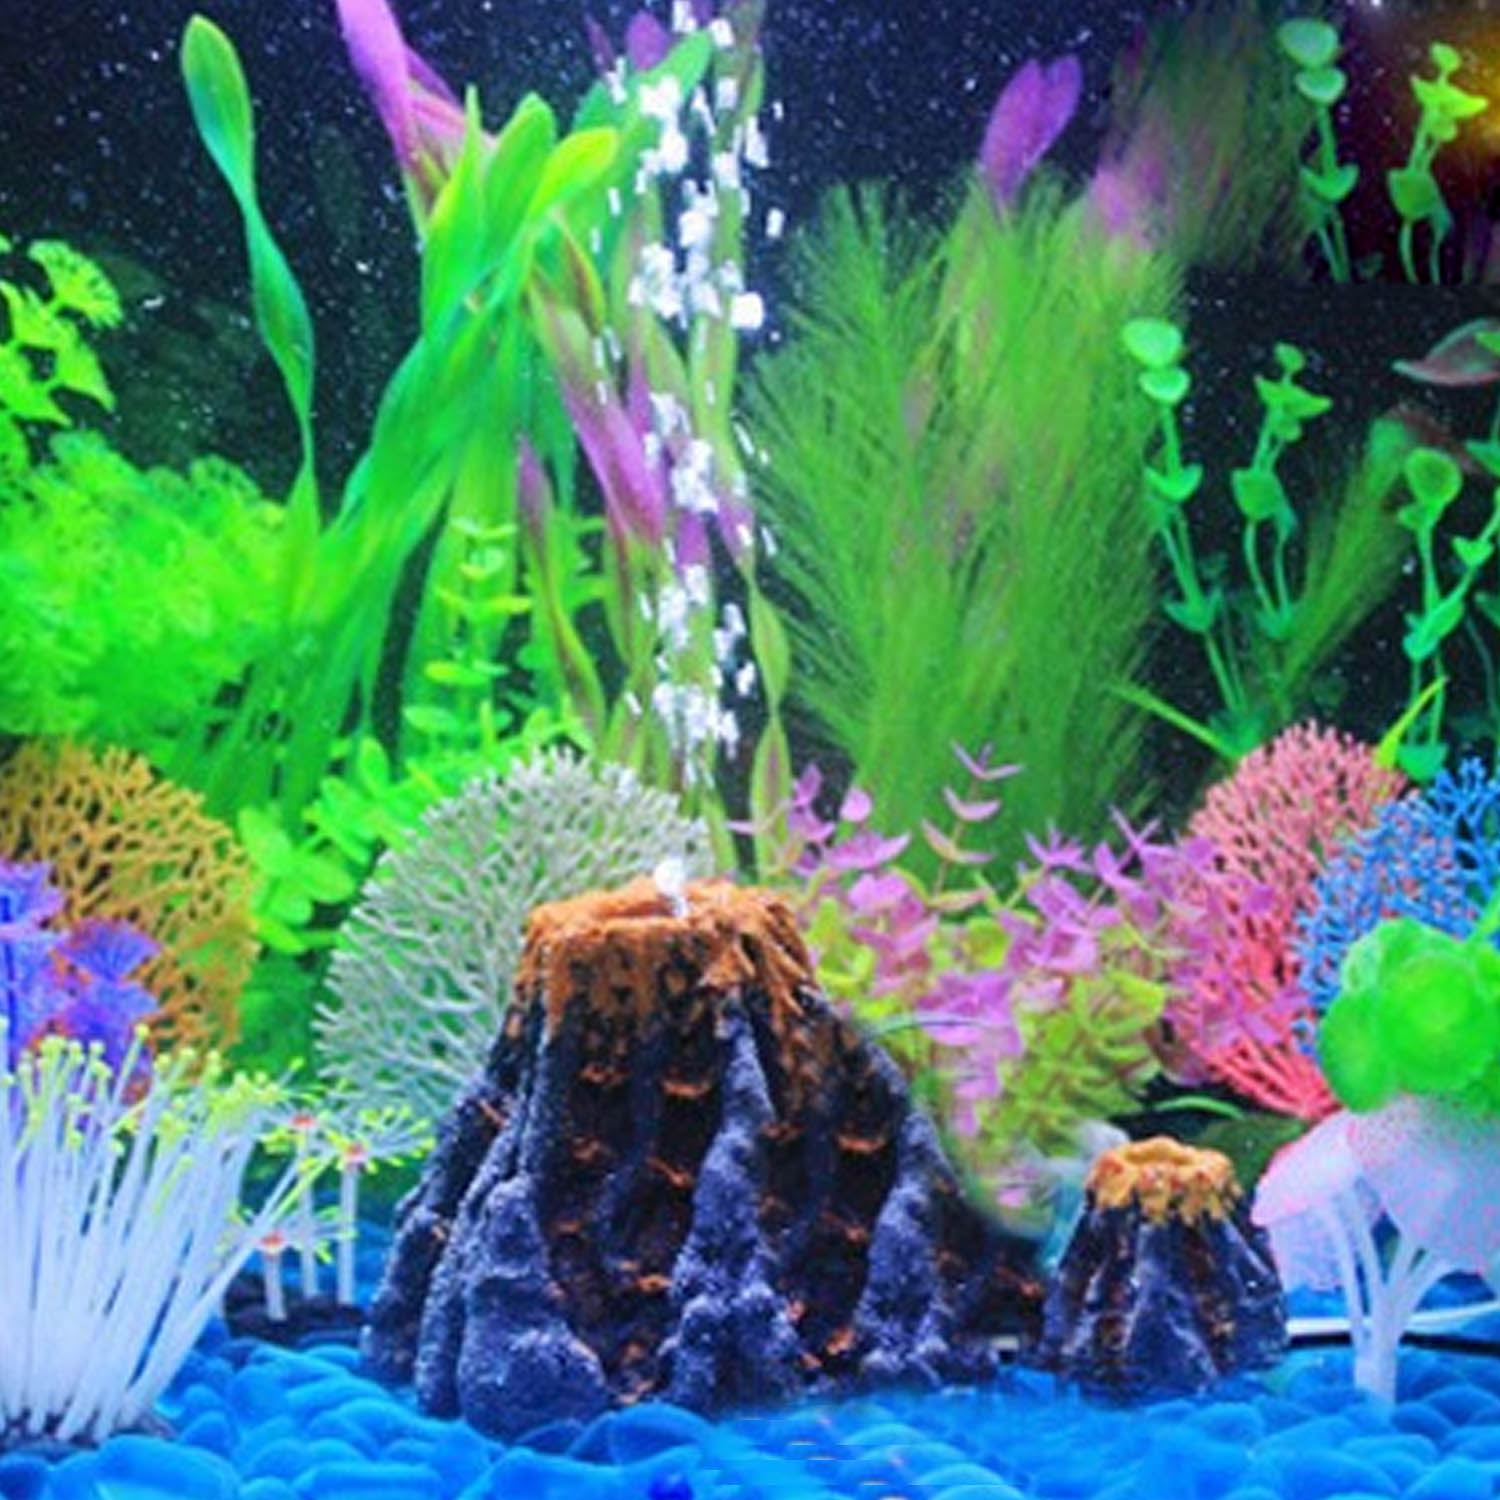 rene decor underwater things artificial real the create can still brozovich pin pinterest than natural decorations saltwater a using by have even if rather scene coral you fish and aquariums decoration tank aquarium on